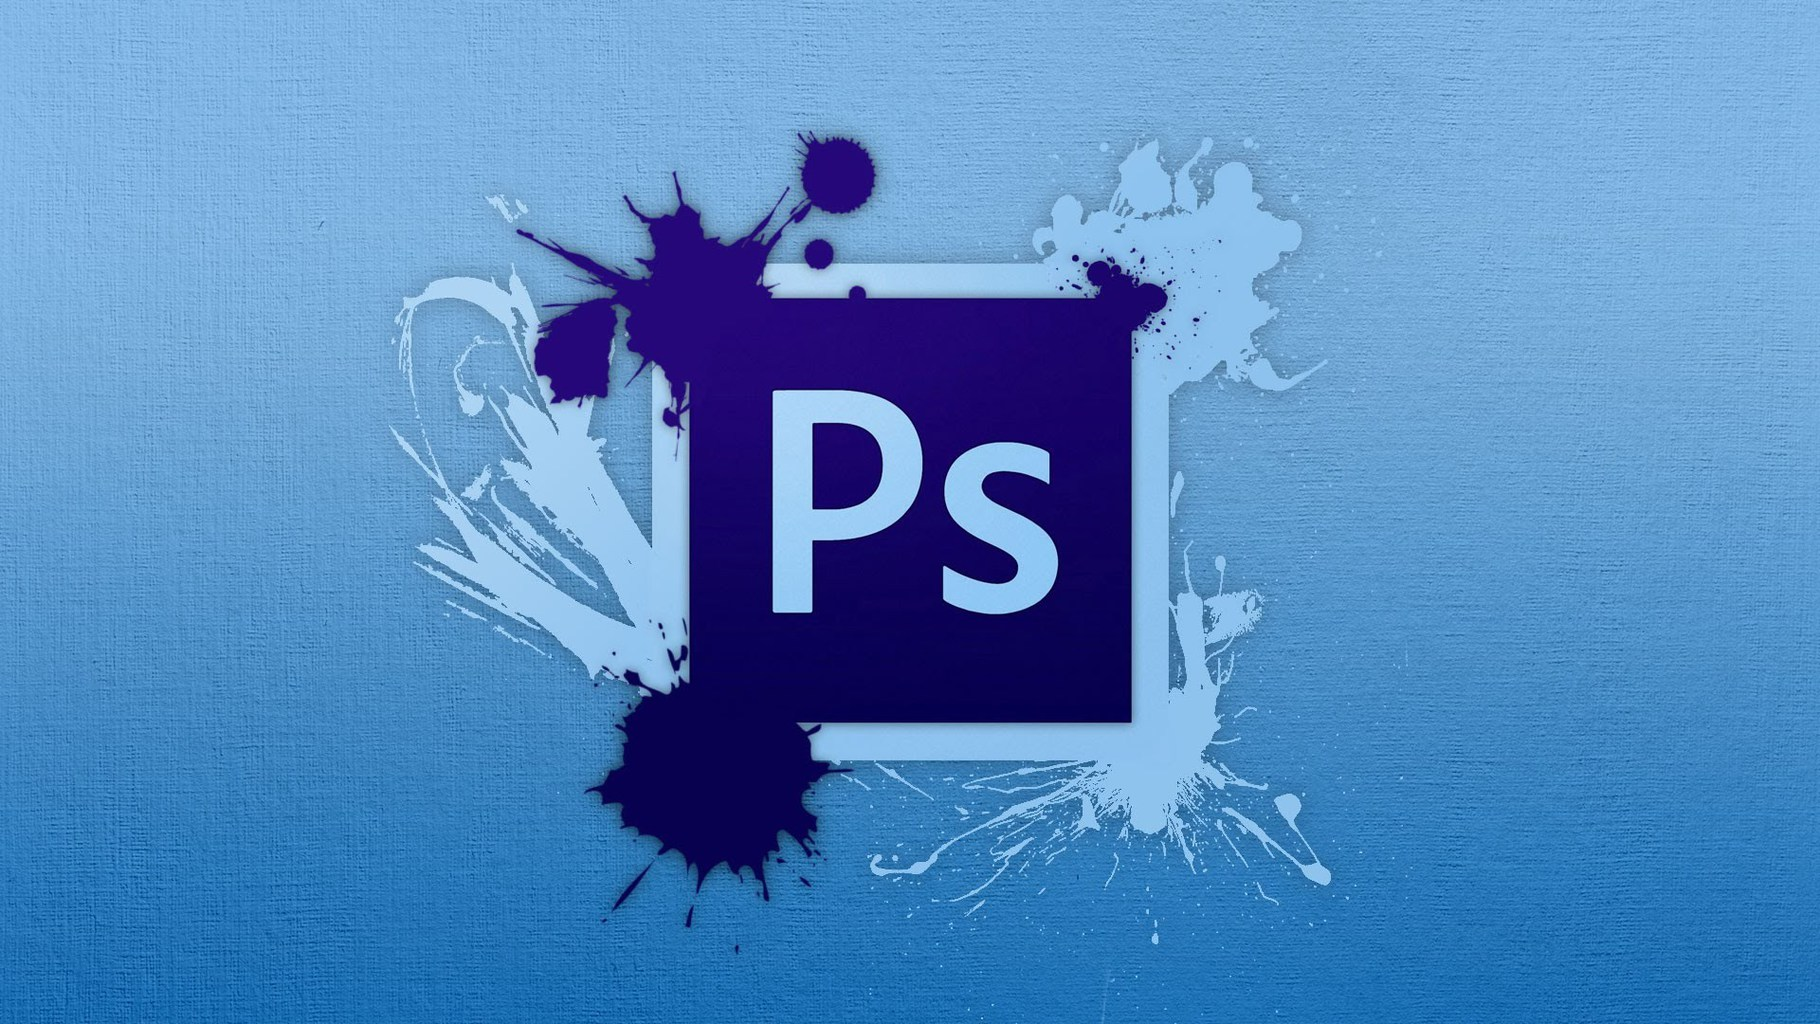 Photoshop Logo (how to get photoshop for free)